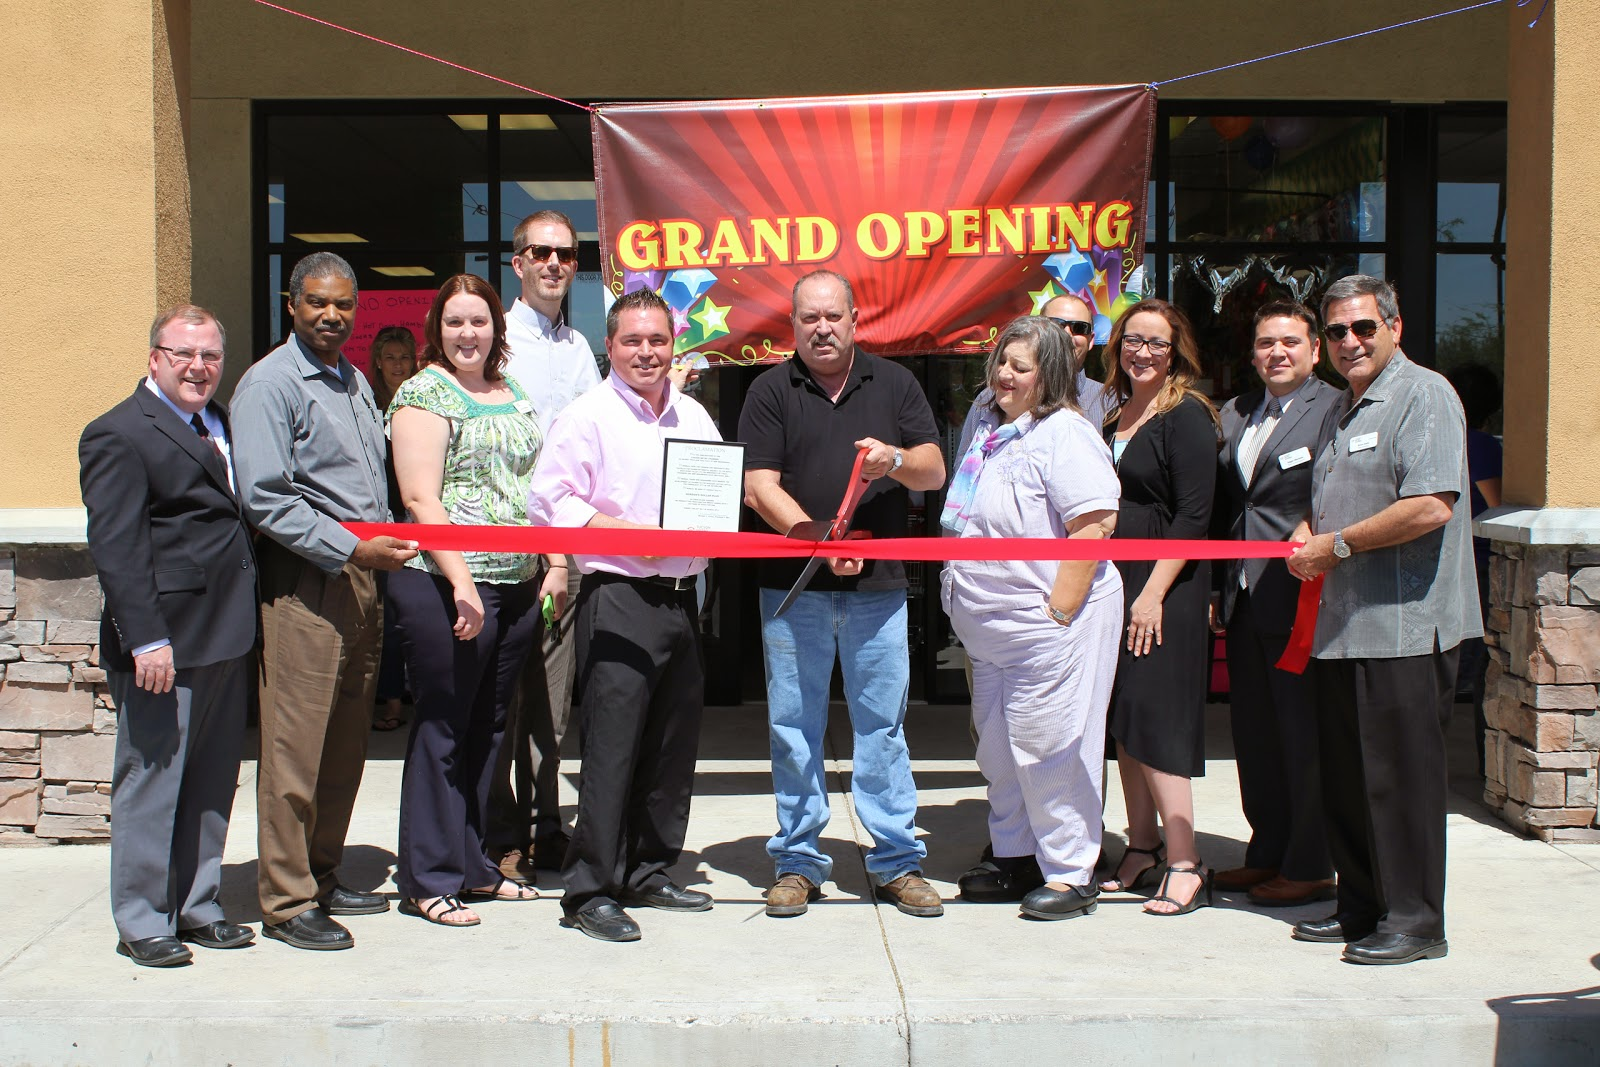 Gordon's Dollar Plus Store celebrated their grand opening on March 26th. The store features jewelry, home décor, party supplies, household needs, gifts and more - with new arrivals weekly.